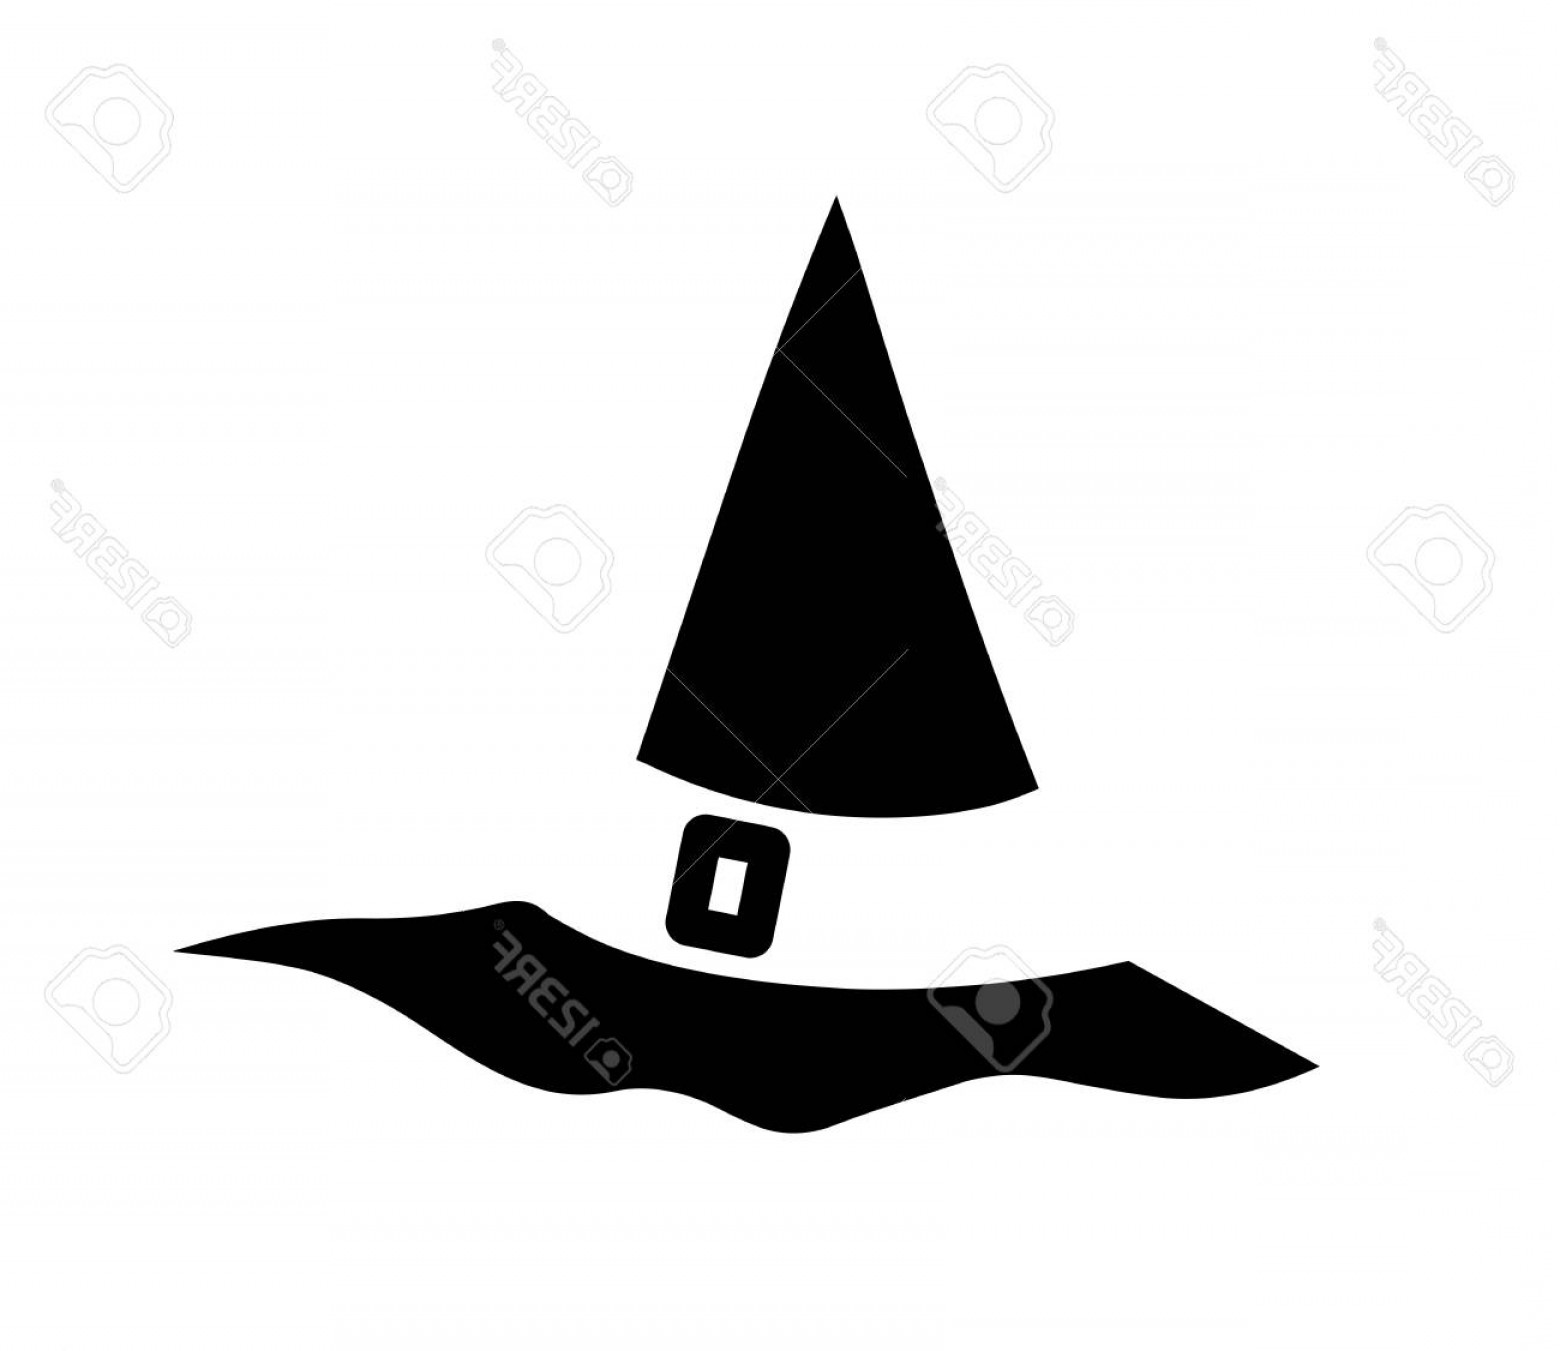 Halloween Witch Hat Vector: Photostock Vector Witch Hat For Halloween Witch Hat Vector Icon Hats With Straps And Buckles Icon For Apps And Website